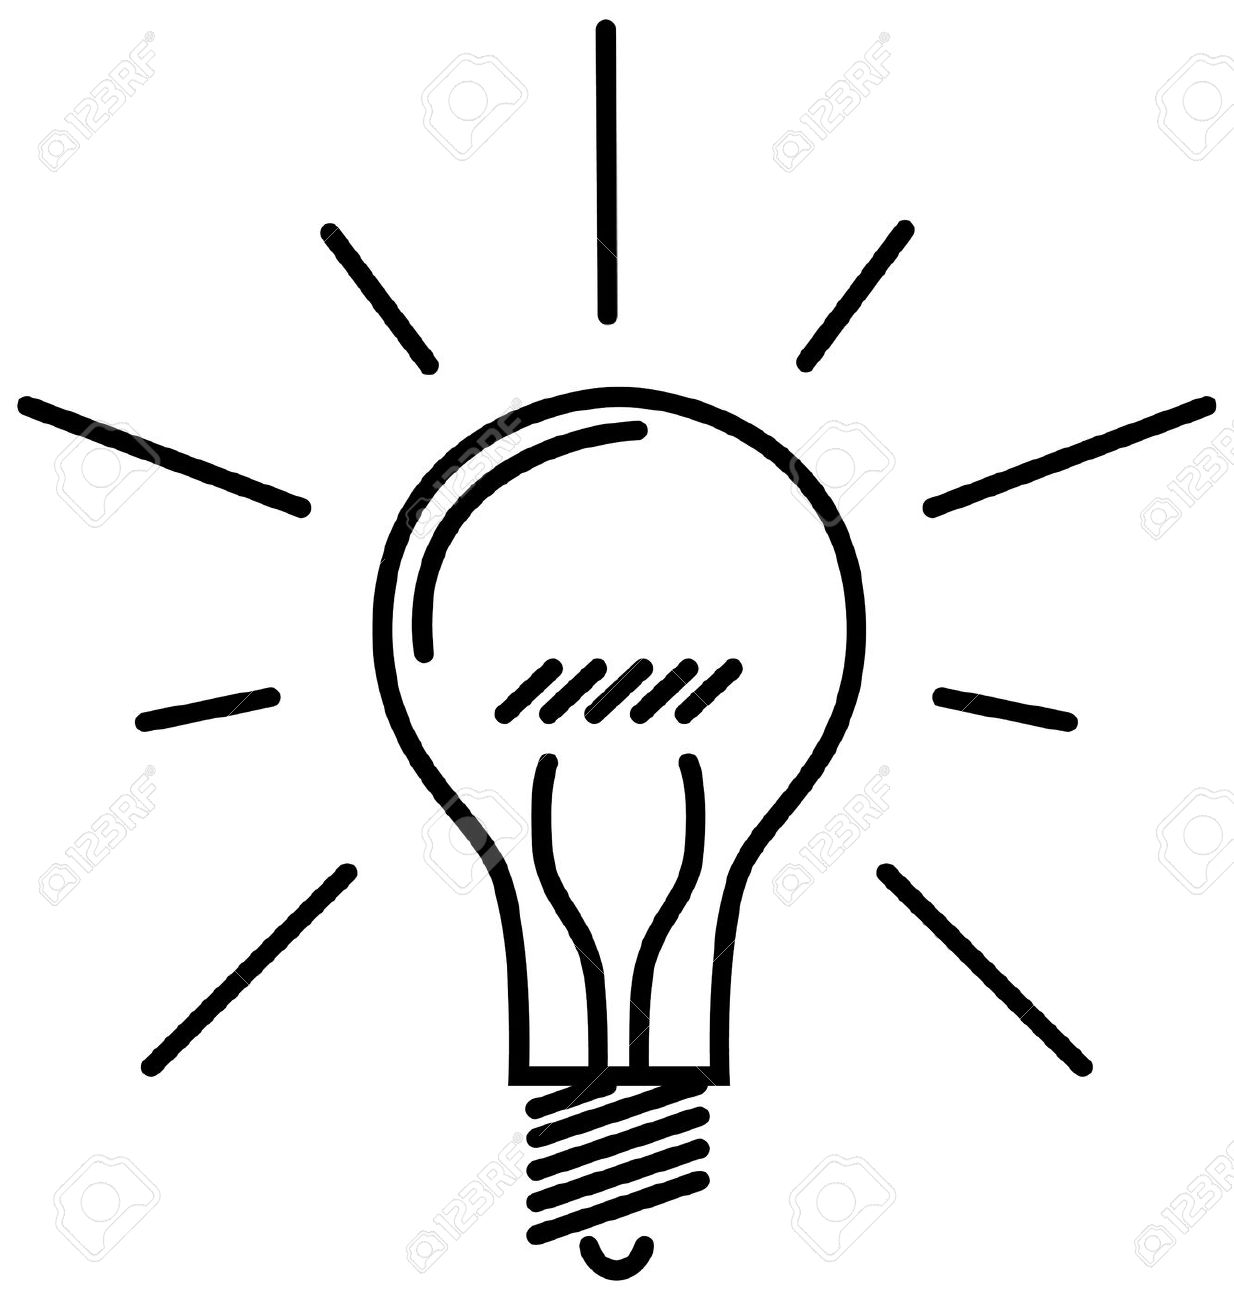 C:\Users\Leon\Desktop\4797829-Classic-Light-Bulb-This-image-is-a-vector-illustration-and-can-be-scaled-to-any-size-without-loss-of-Stock-Vector[1].jpg